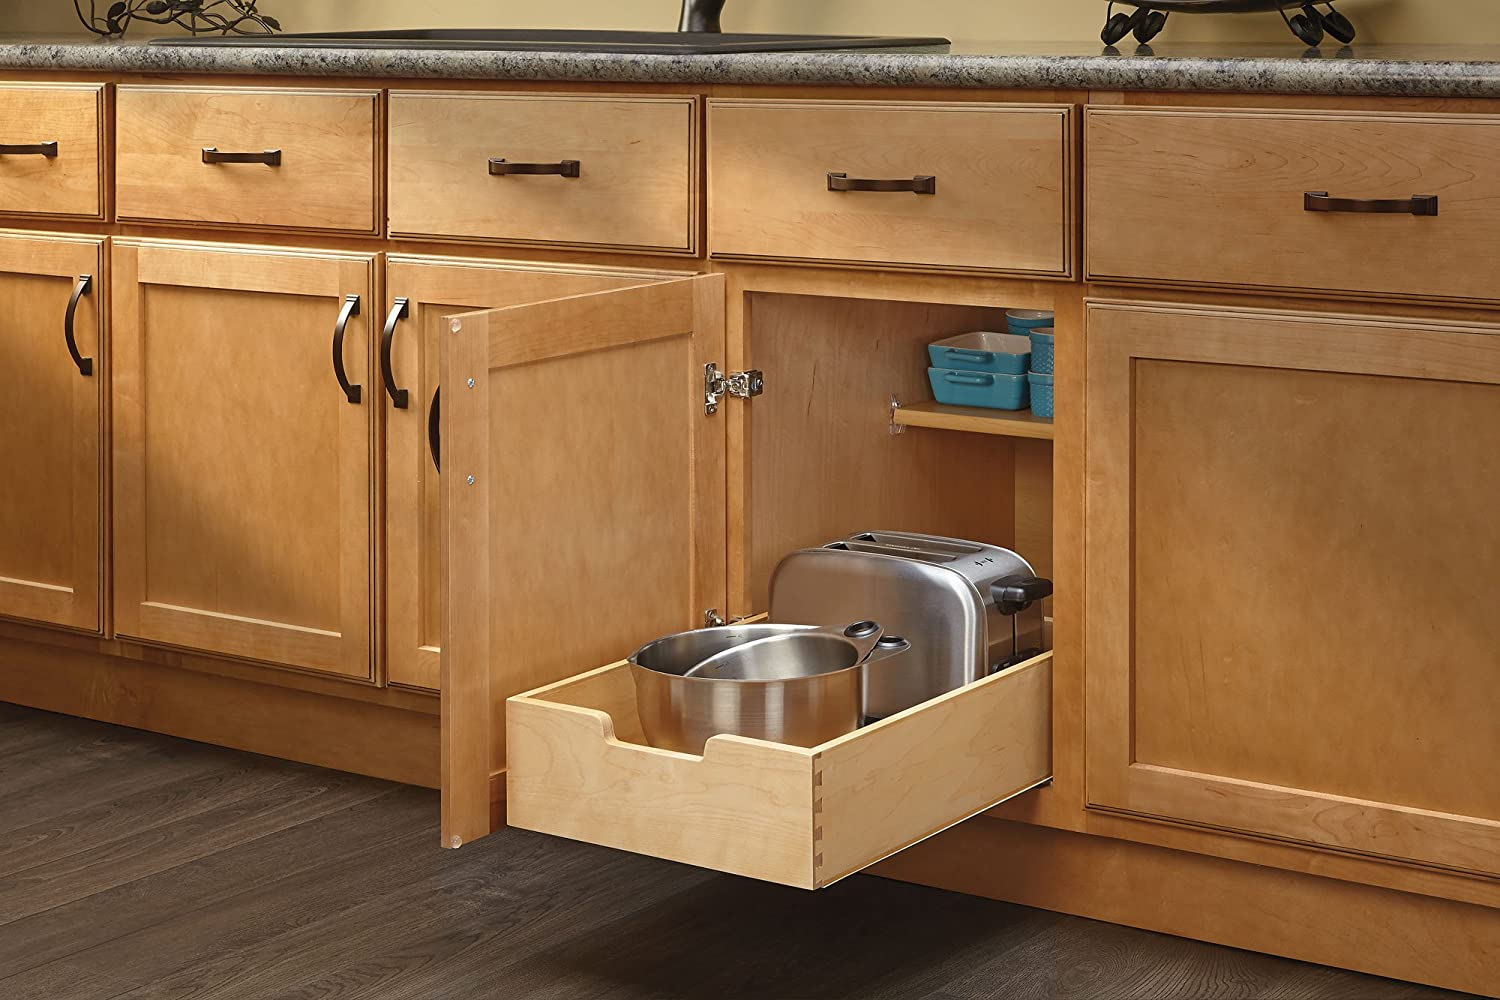 Attractive Kitchen Base Cabinet Pull Outs Part - 5: Amazon.com: Rev-A-Shelf - 4WDB-15 - Medium Wood Base Cabinet Pull-Out Drawer:  Home U0026 Kitchen